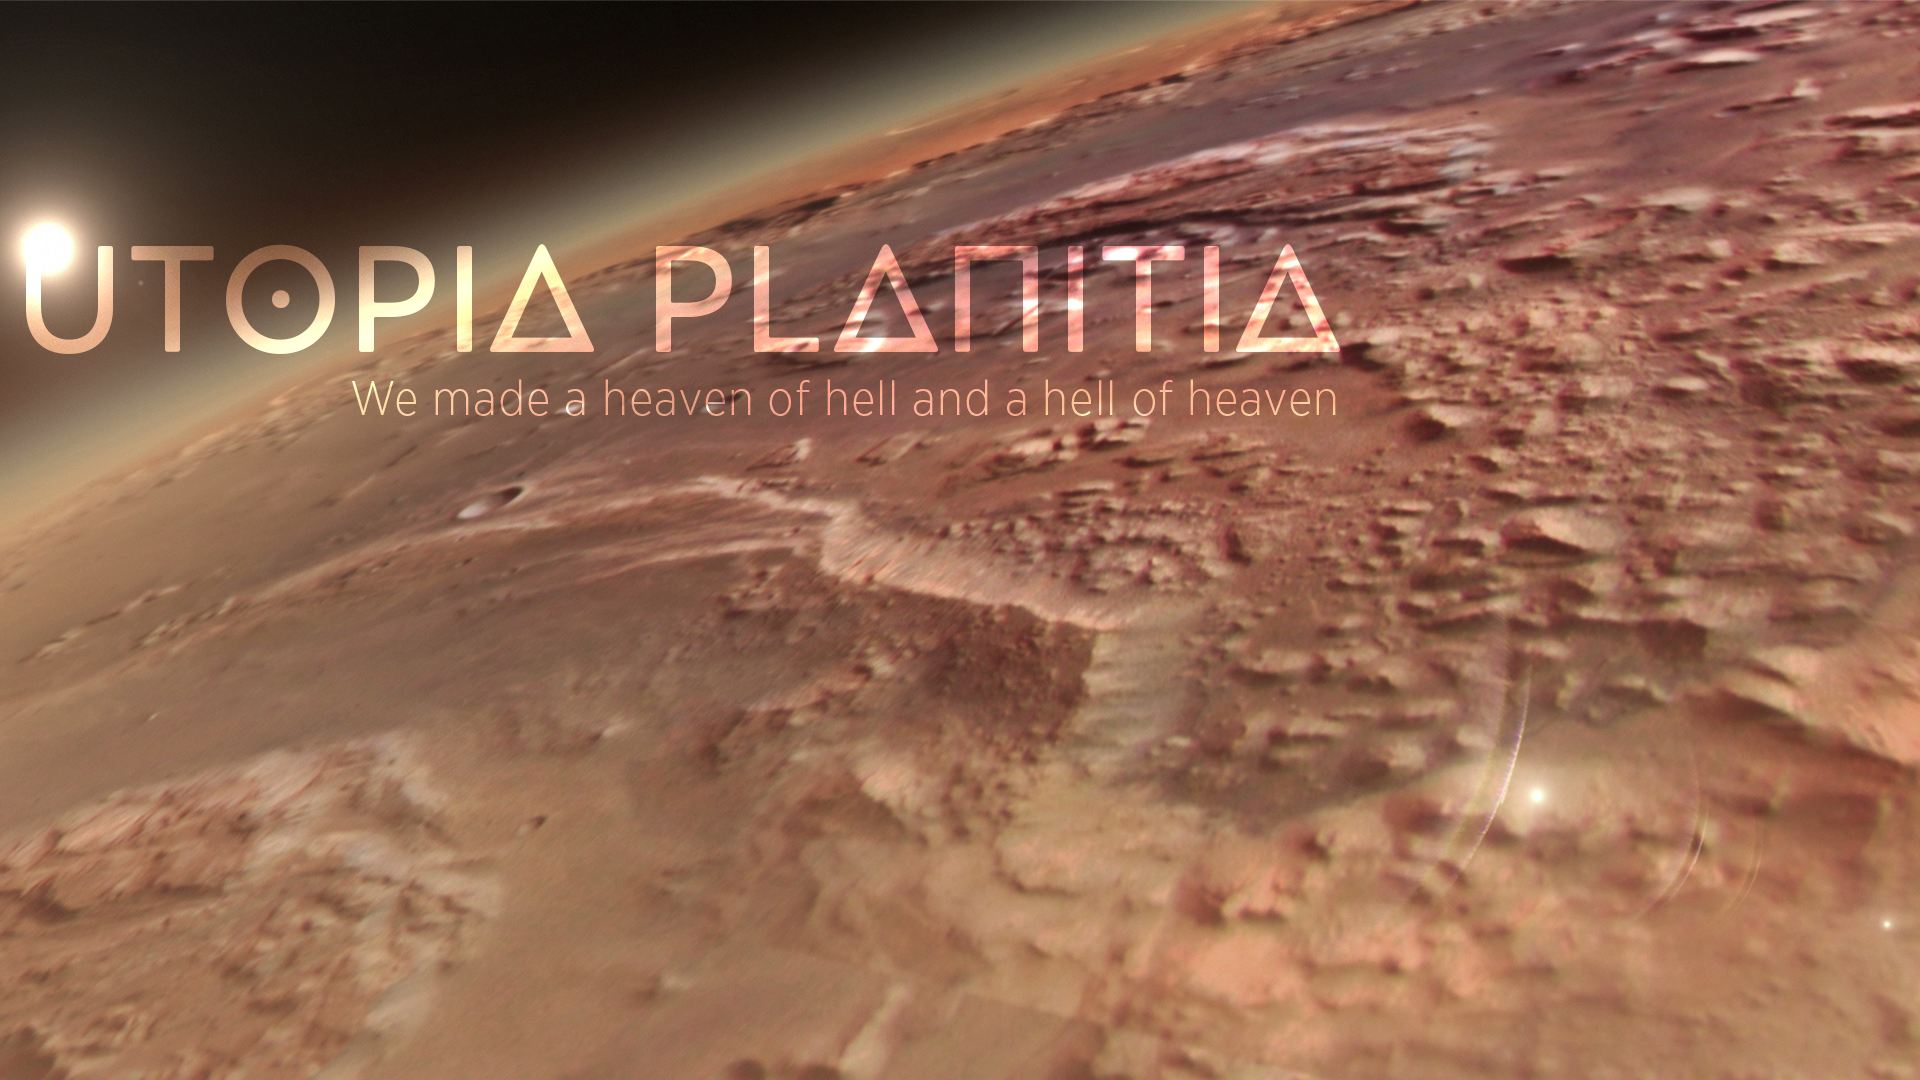 Utopia Planitia Season 2